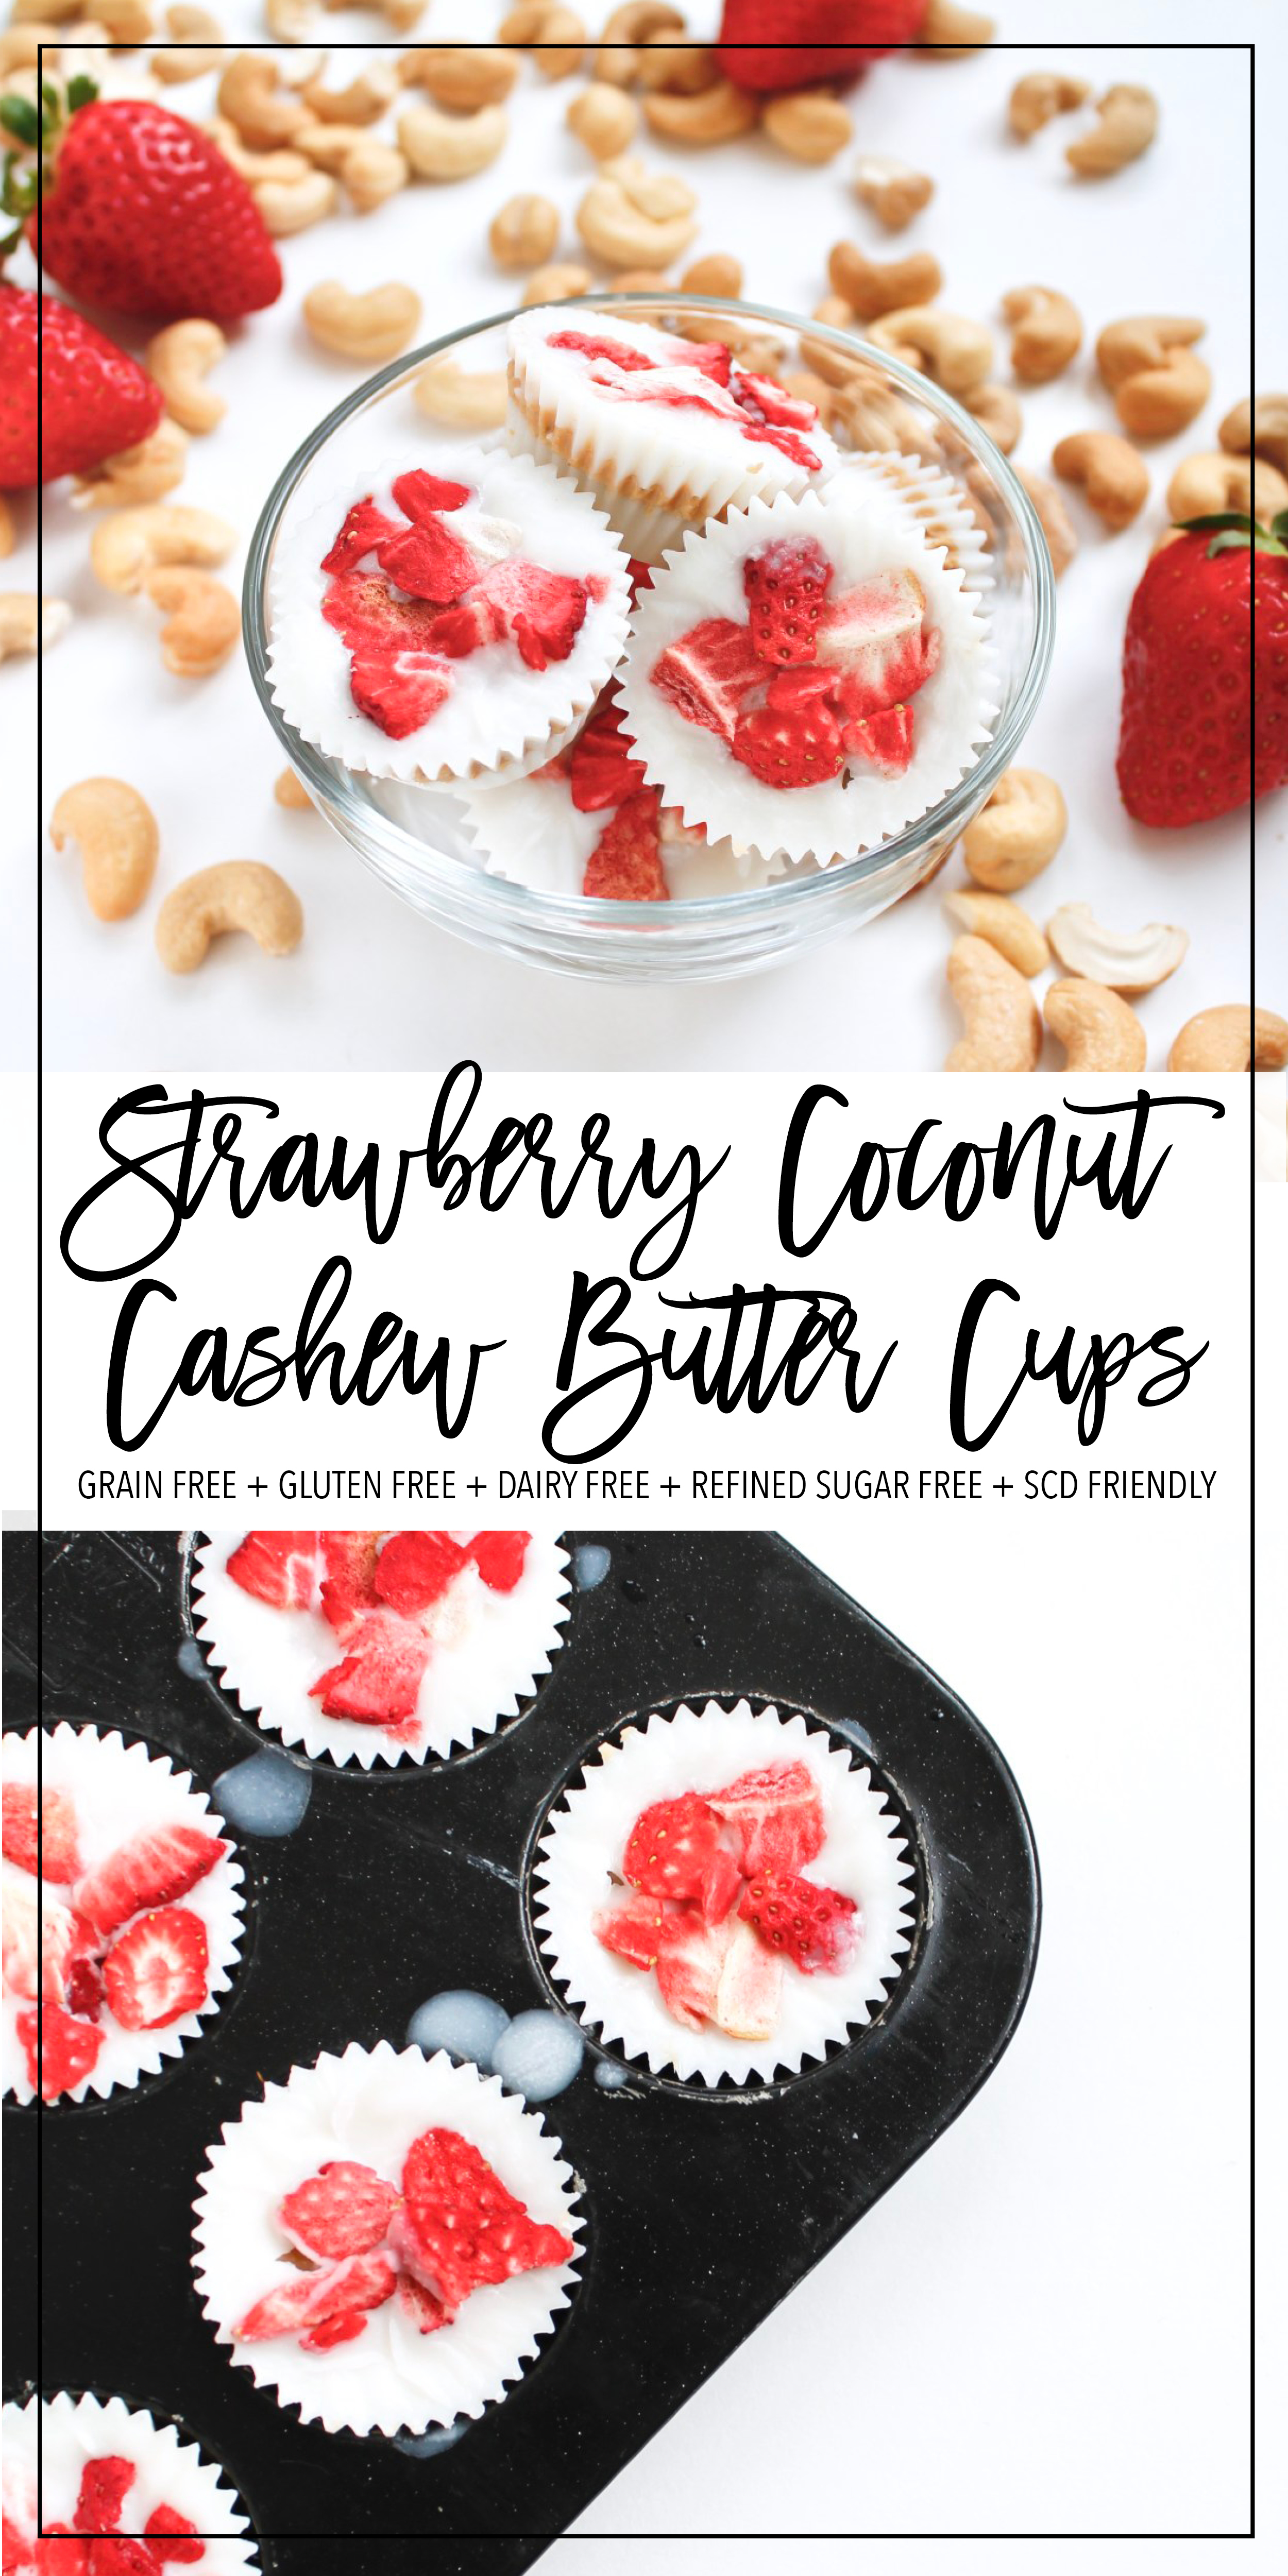 These vegan strawberry, cashew butter cups are a perfect healthy dessert or healthy snack! They are grain free, gluten free, dairy free, refined sugar free and Specific Carbohydrate Diet friendly! They're the perfect allergy free energy ball recipe and are a great healthy kid recipe! Made with real ingredients like coconut butter and raw cashew butter, they're good for you AND taste good! Click through the try the recipe for yourself! #paleo #specificcarbohydratediet #antiinflammatory